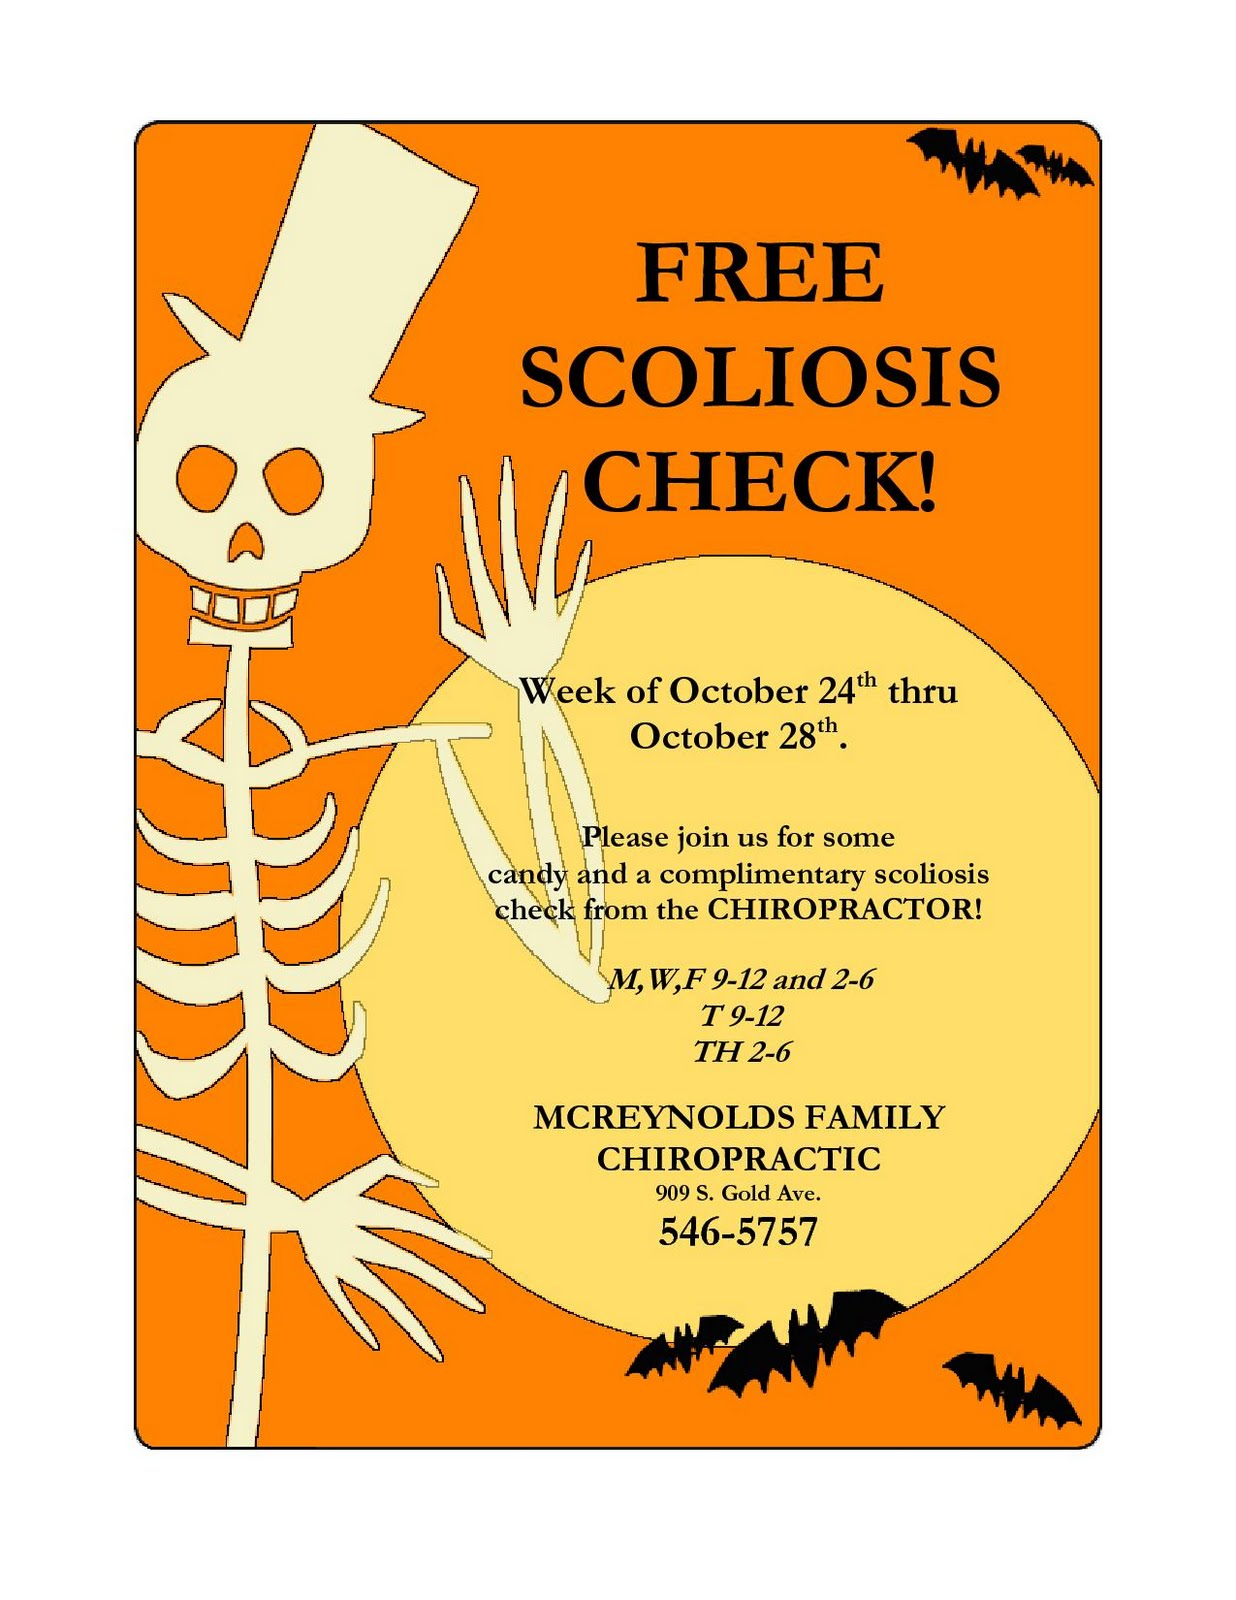 scoliosis check by pediatric chiropractor in deming nm